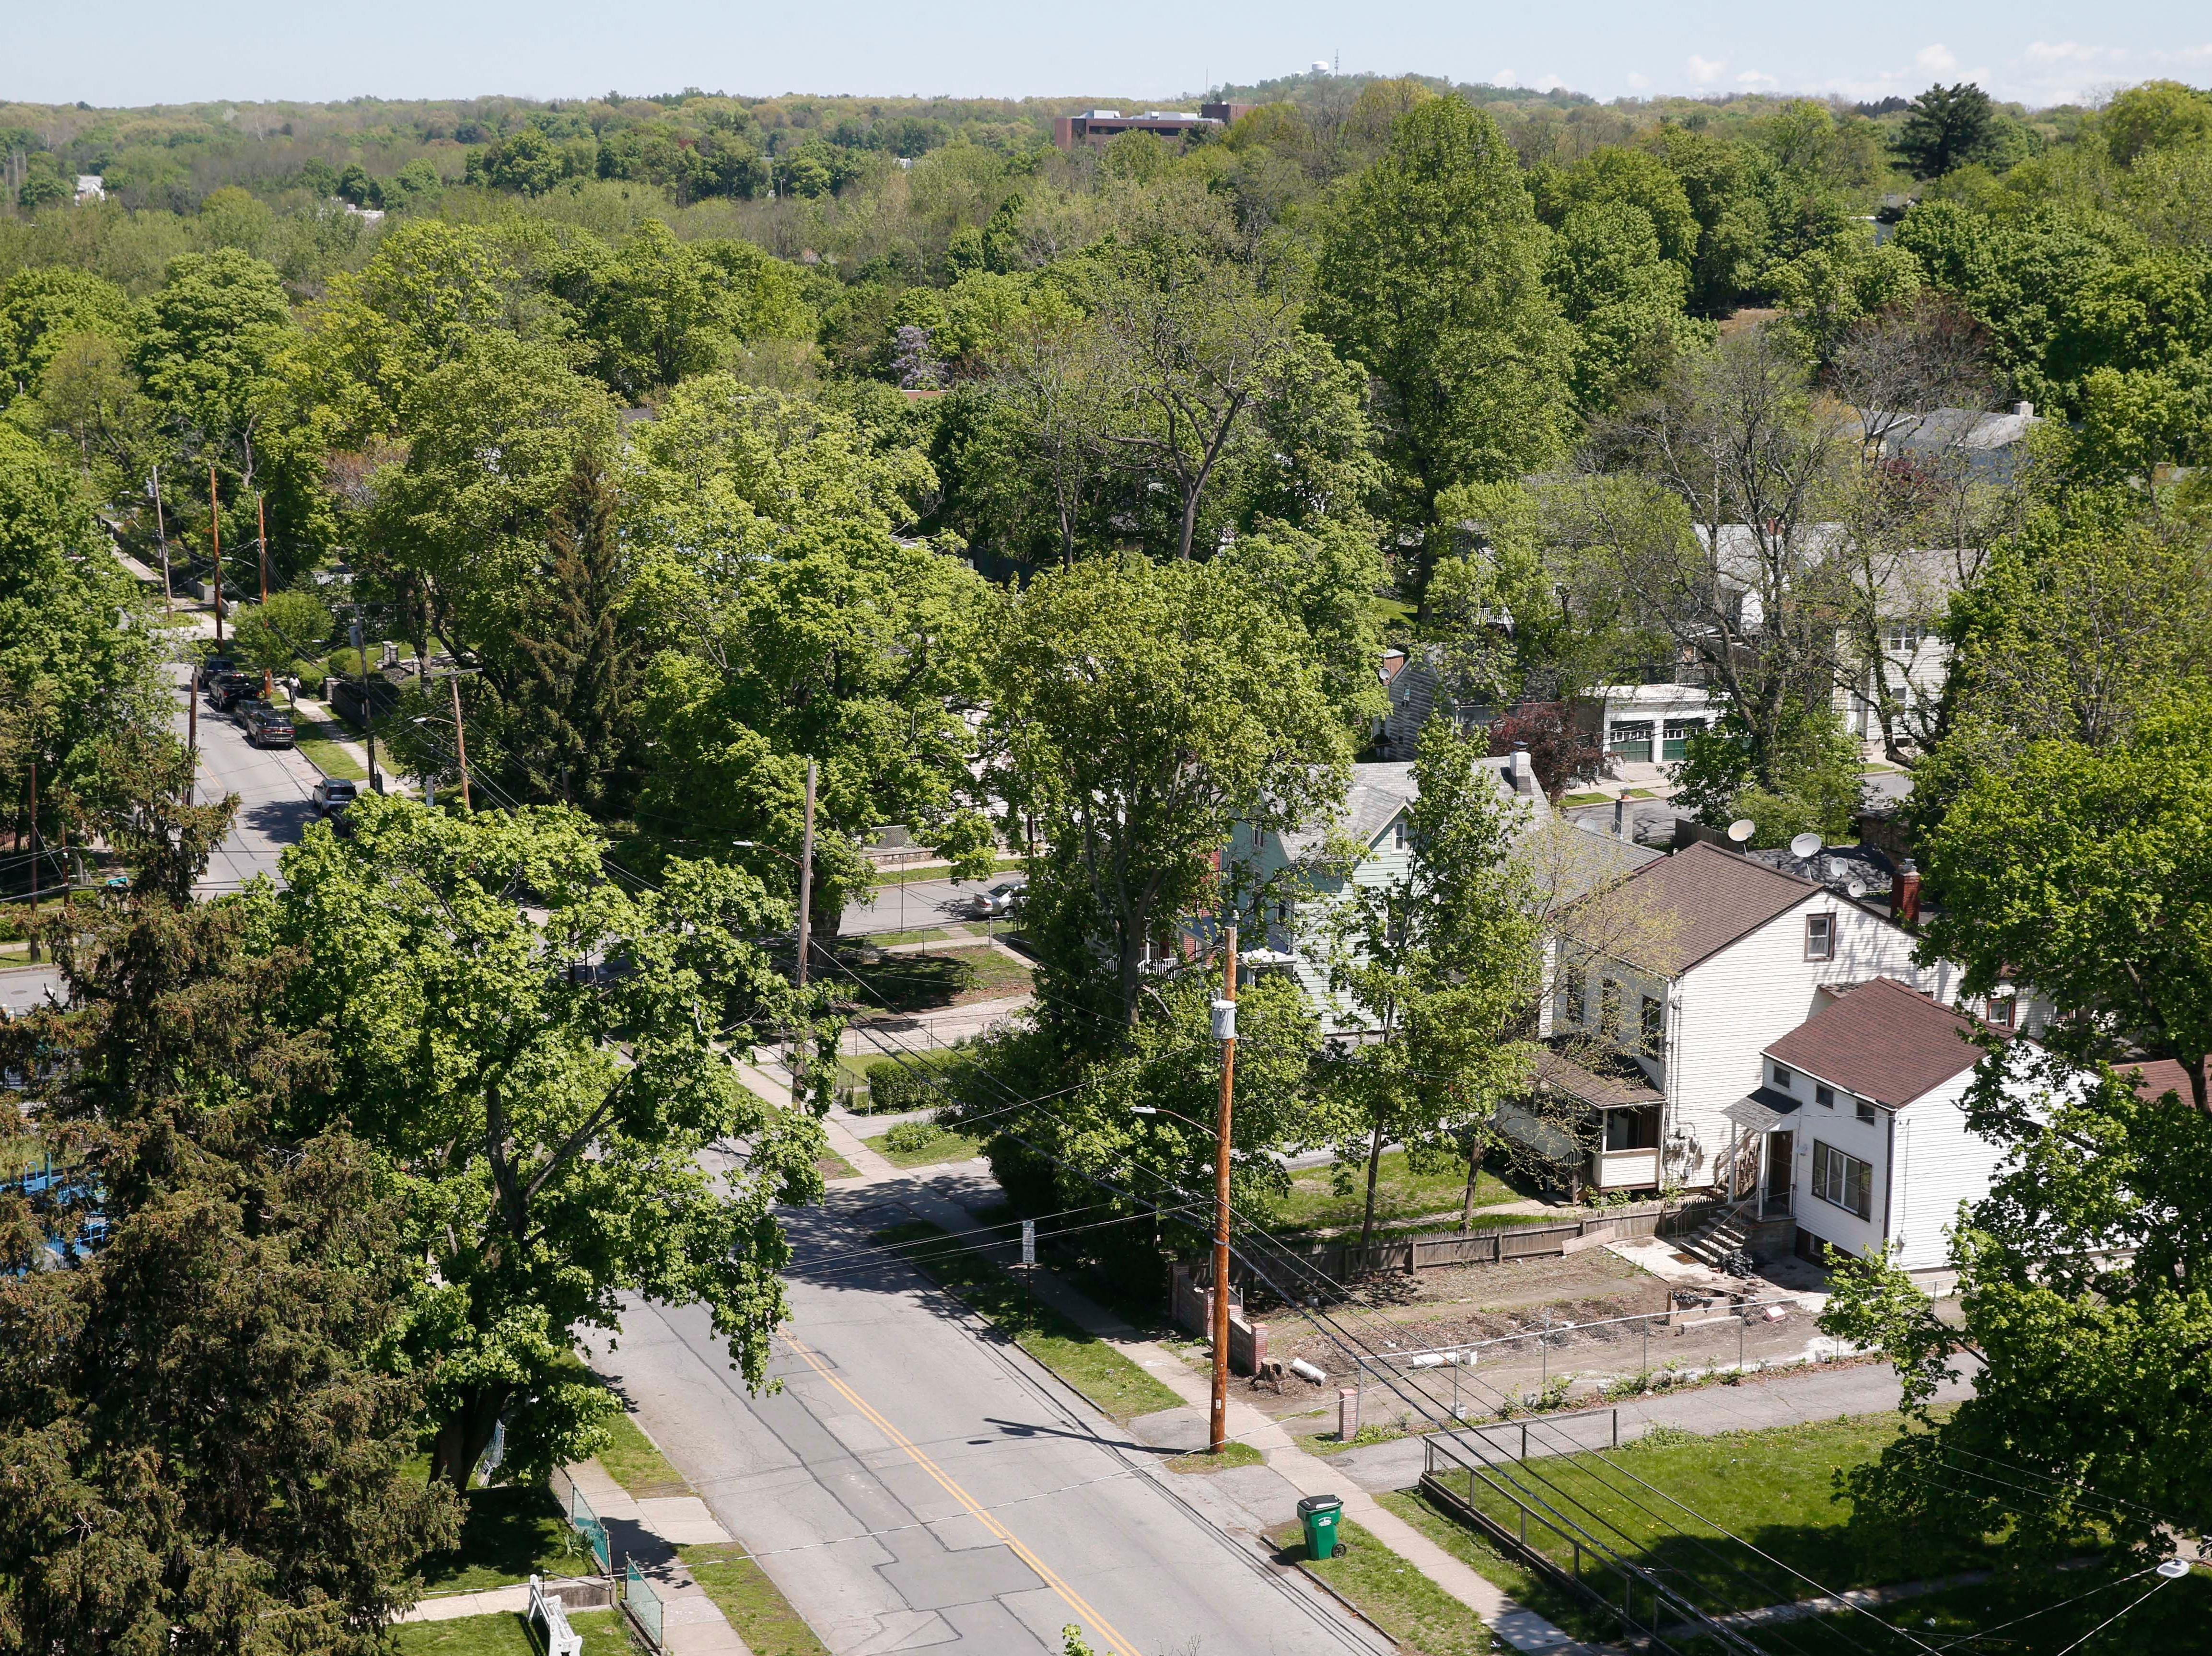 The intersection of Delafield Street and Hoffman Street as seen from the Walkway Over the Hudson in the City of Poughkeepsie on May 8, 2019. Carol Kozlowski resides in this neighborhood.